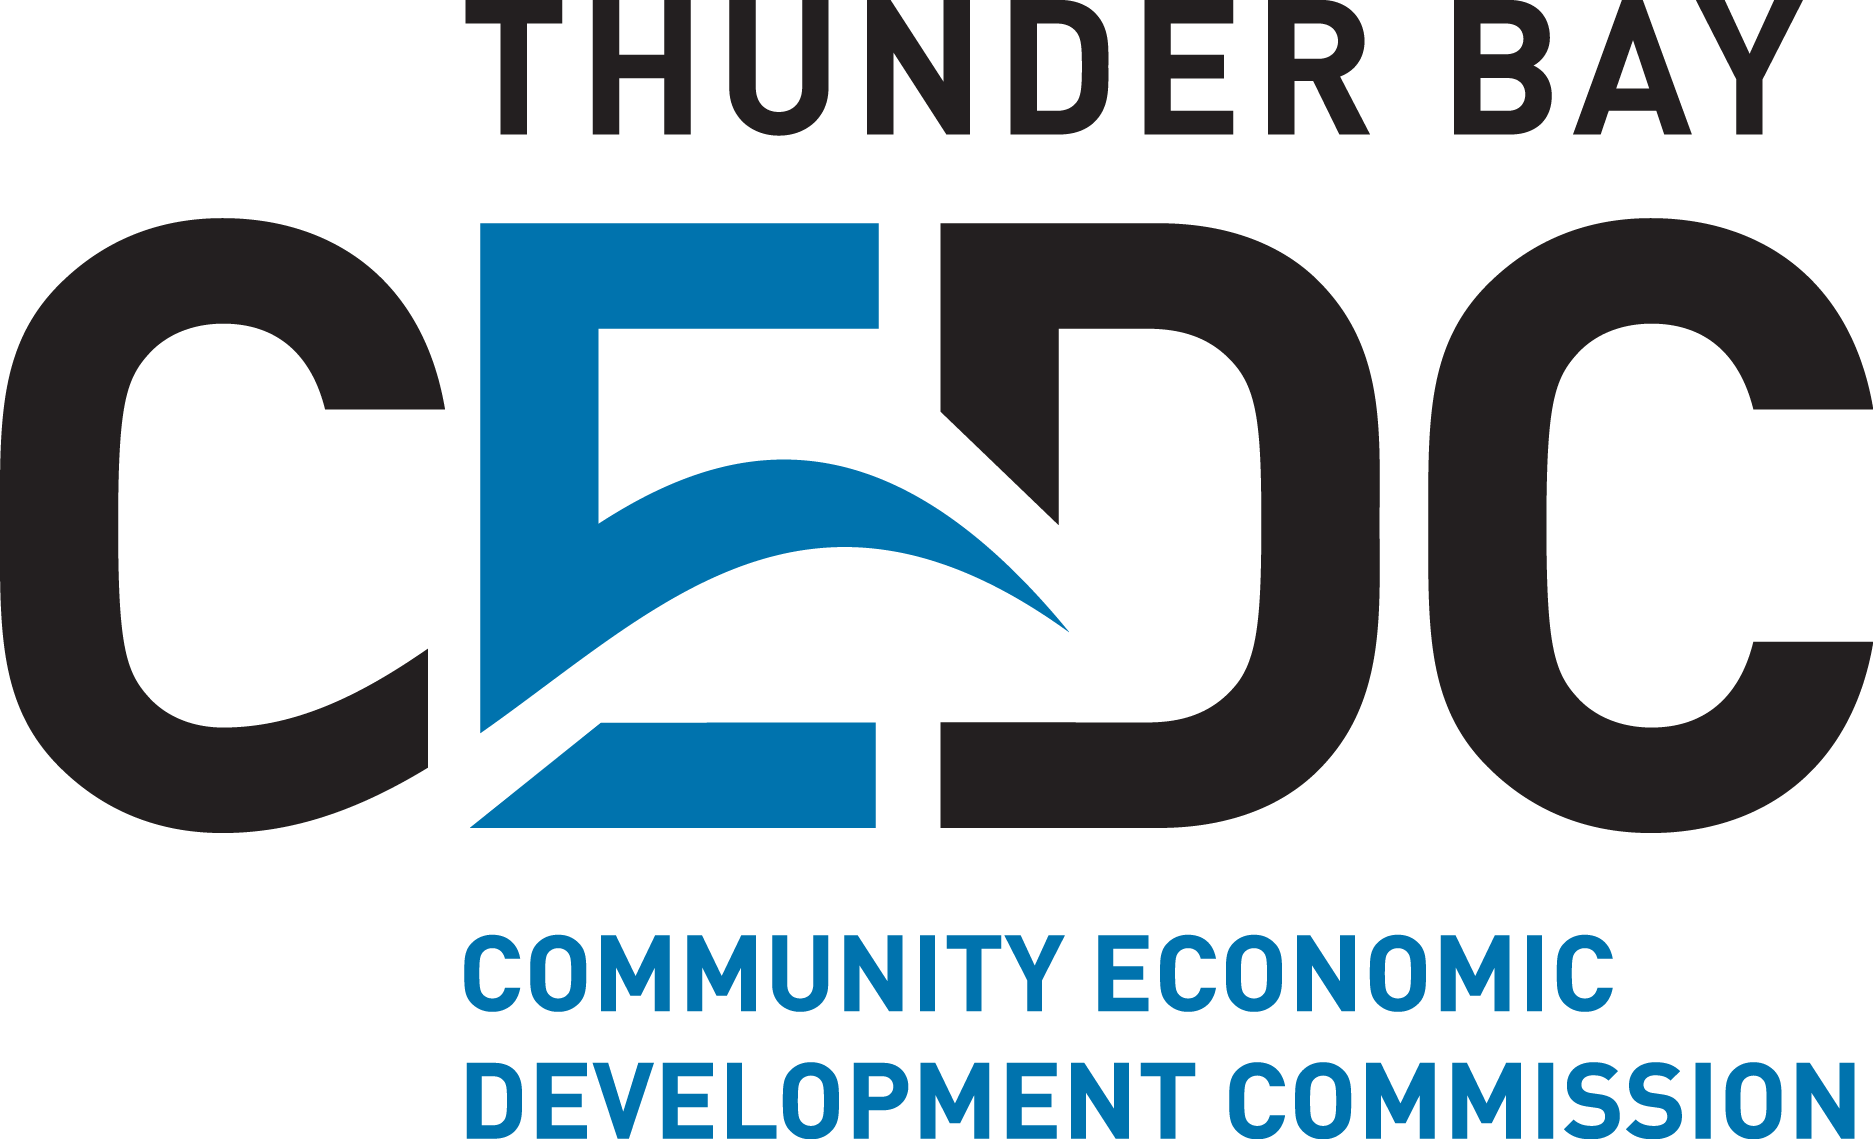 Thunder Bay Community Economic Development Commission